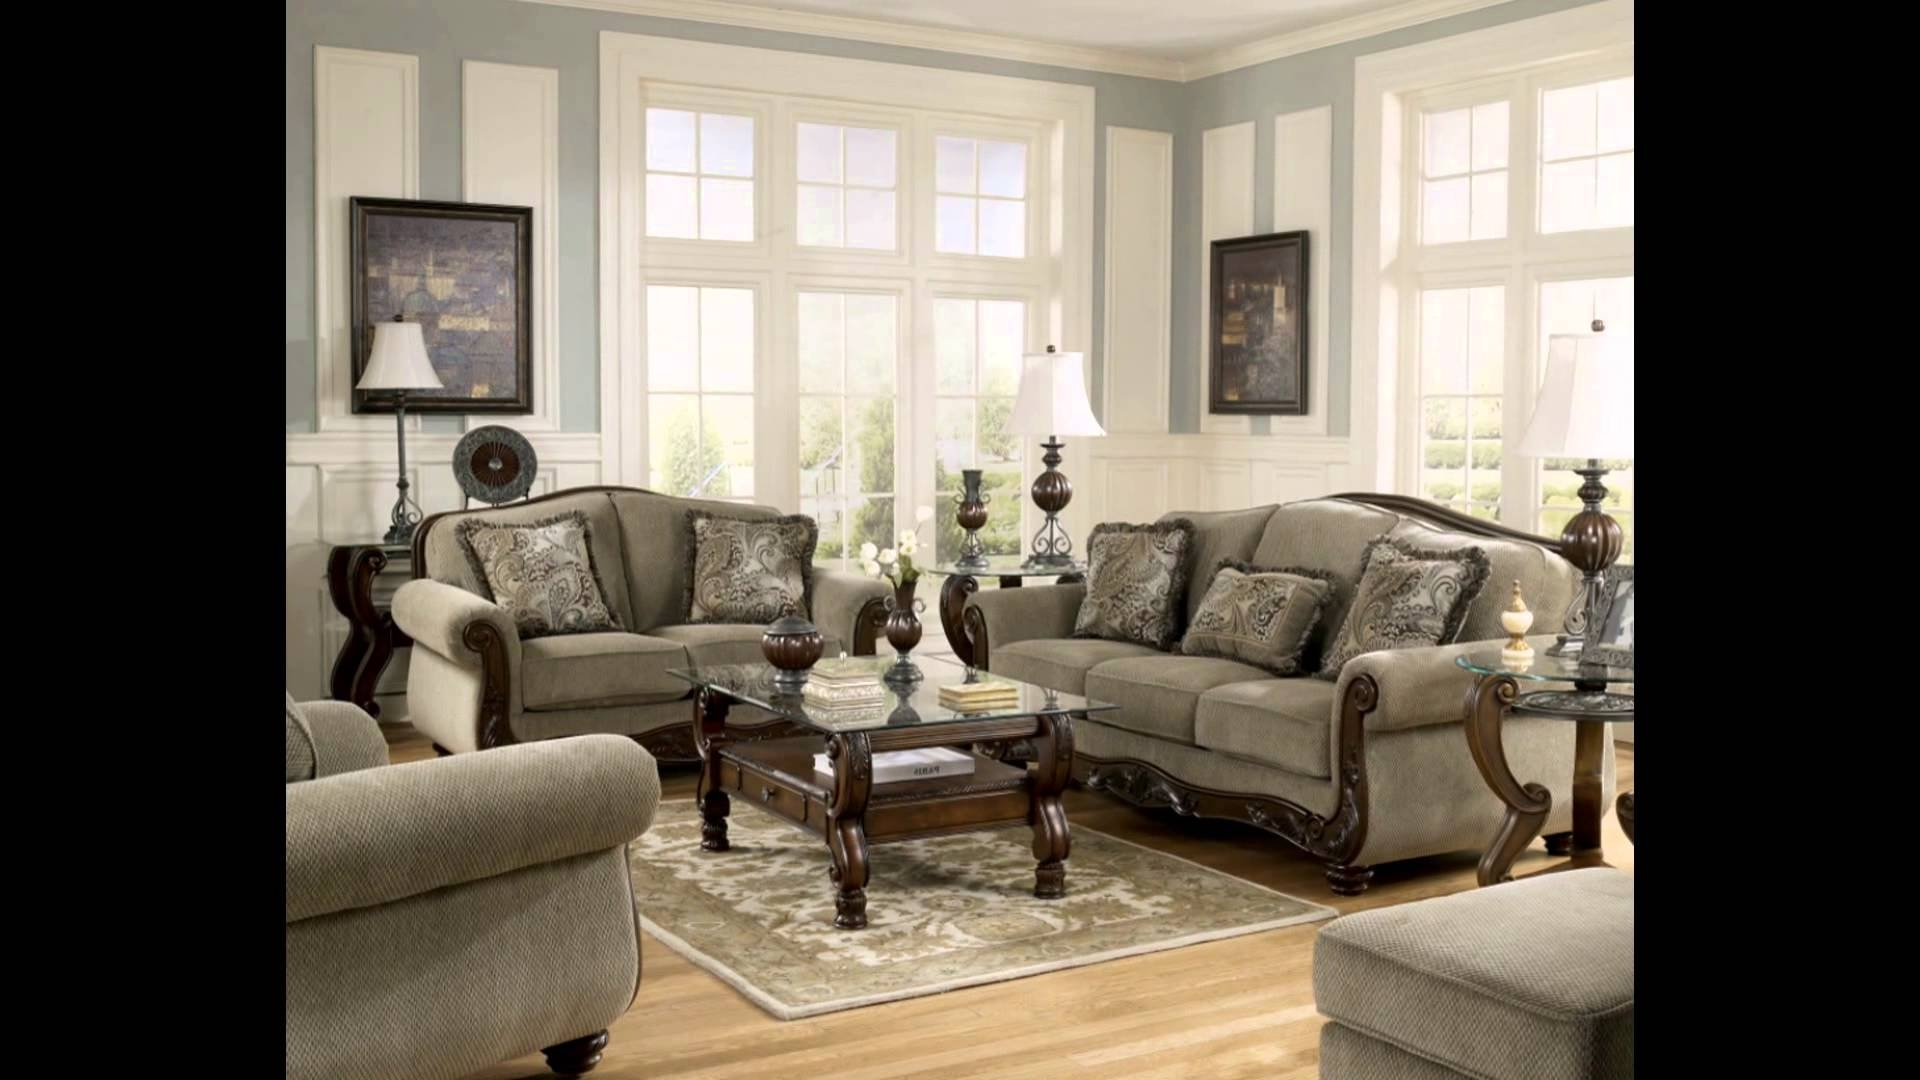 Ethan Allen Sofas And Chairs Within Well Known Ethan Allen Furniture – Youtube (View 13 of 15)